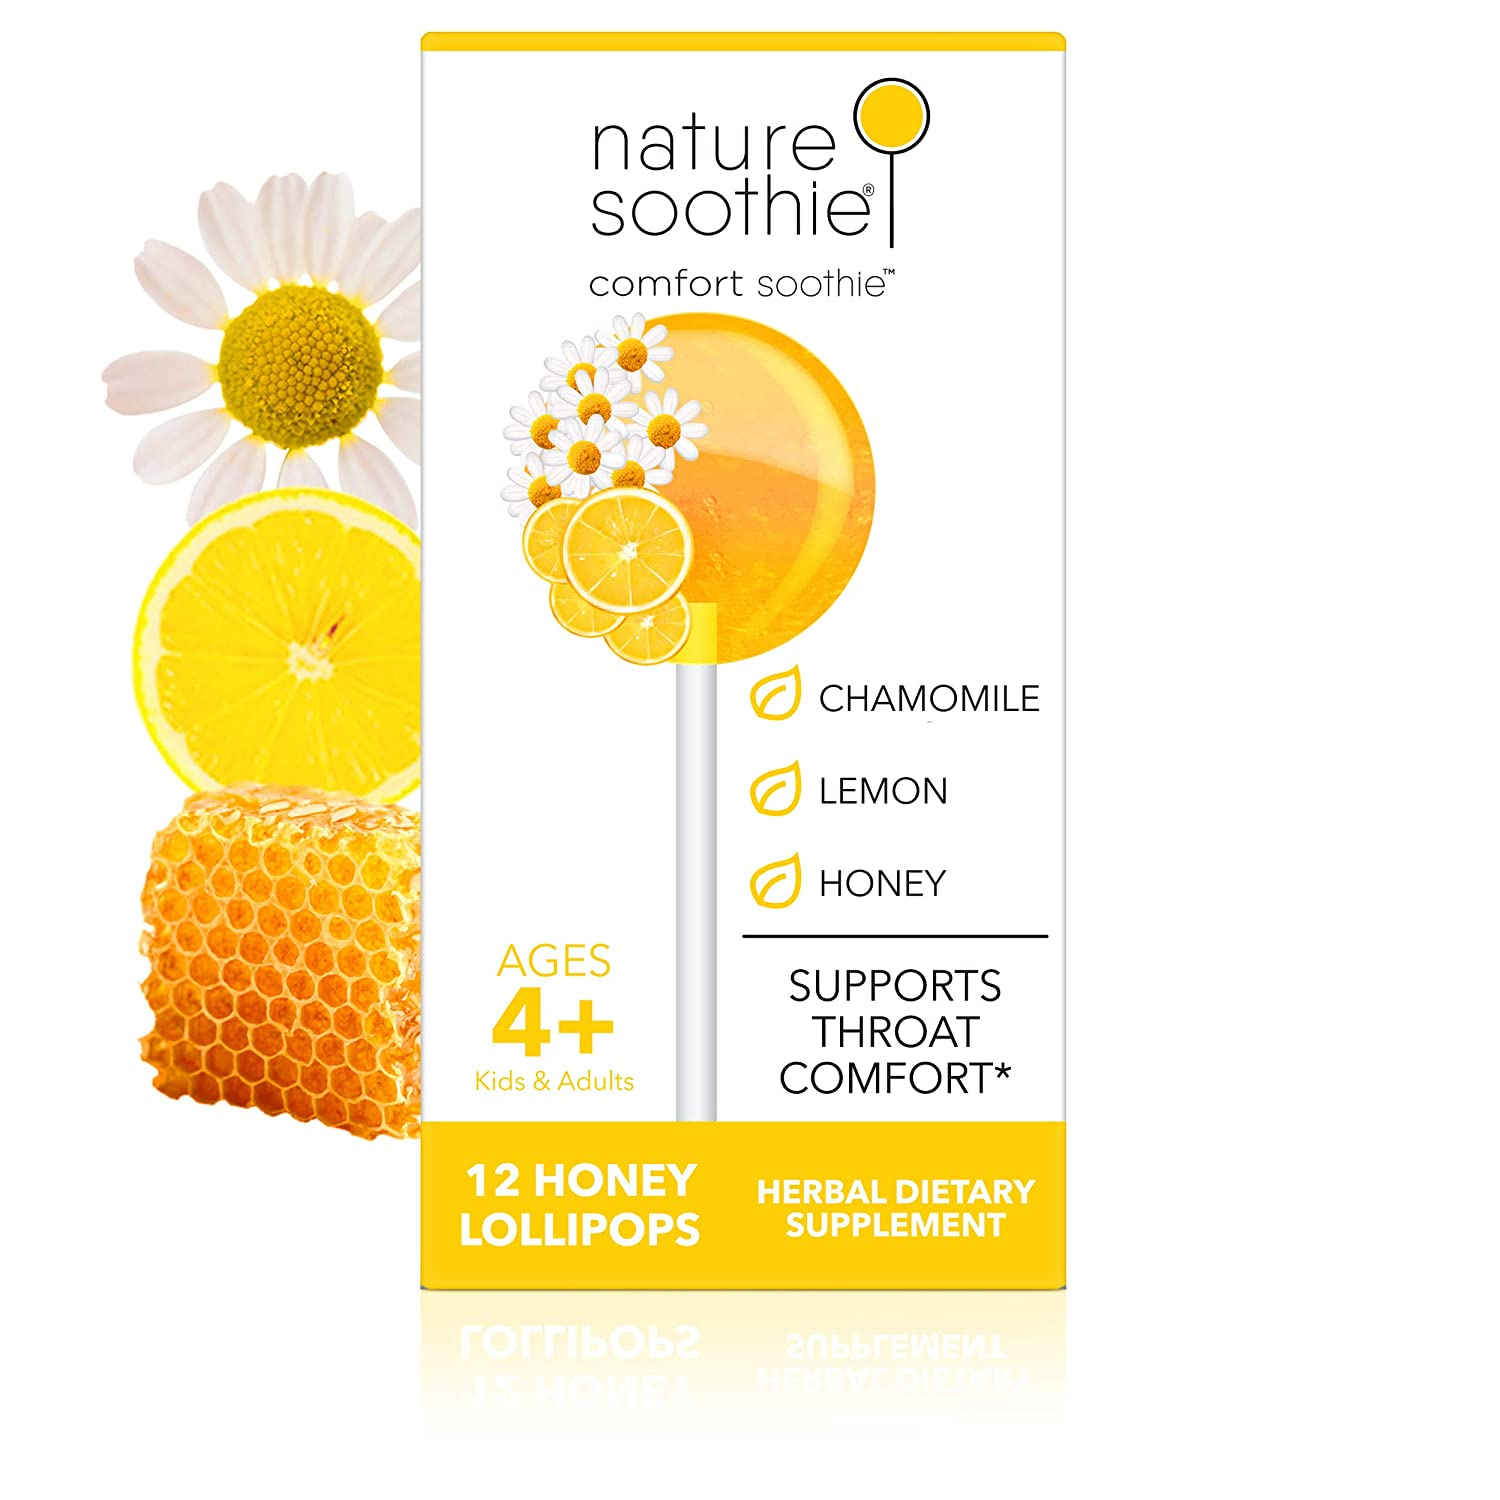 Amazon.com: comfort soothie all-natural Lollipop, con ...